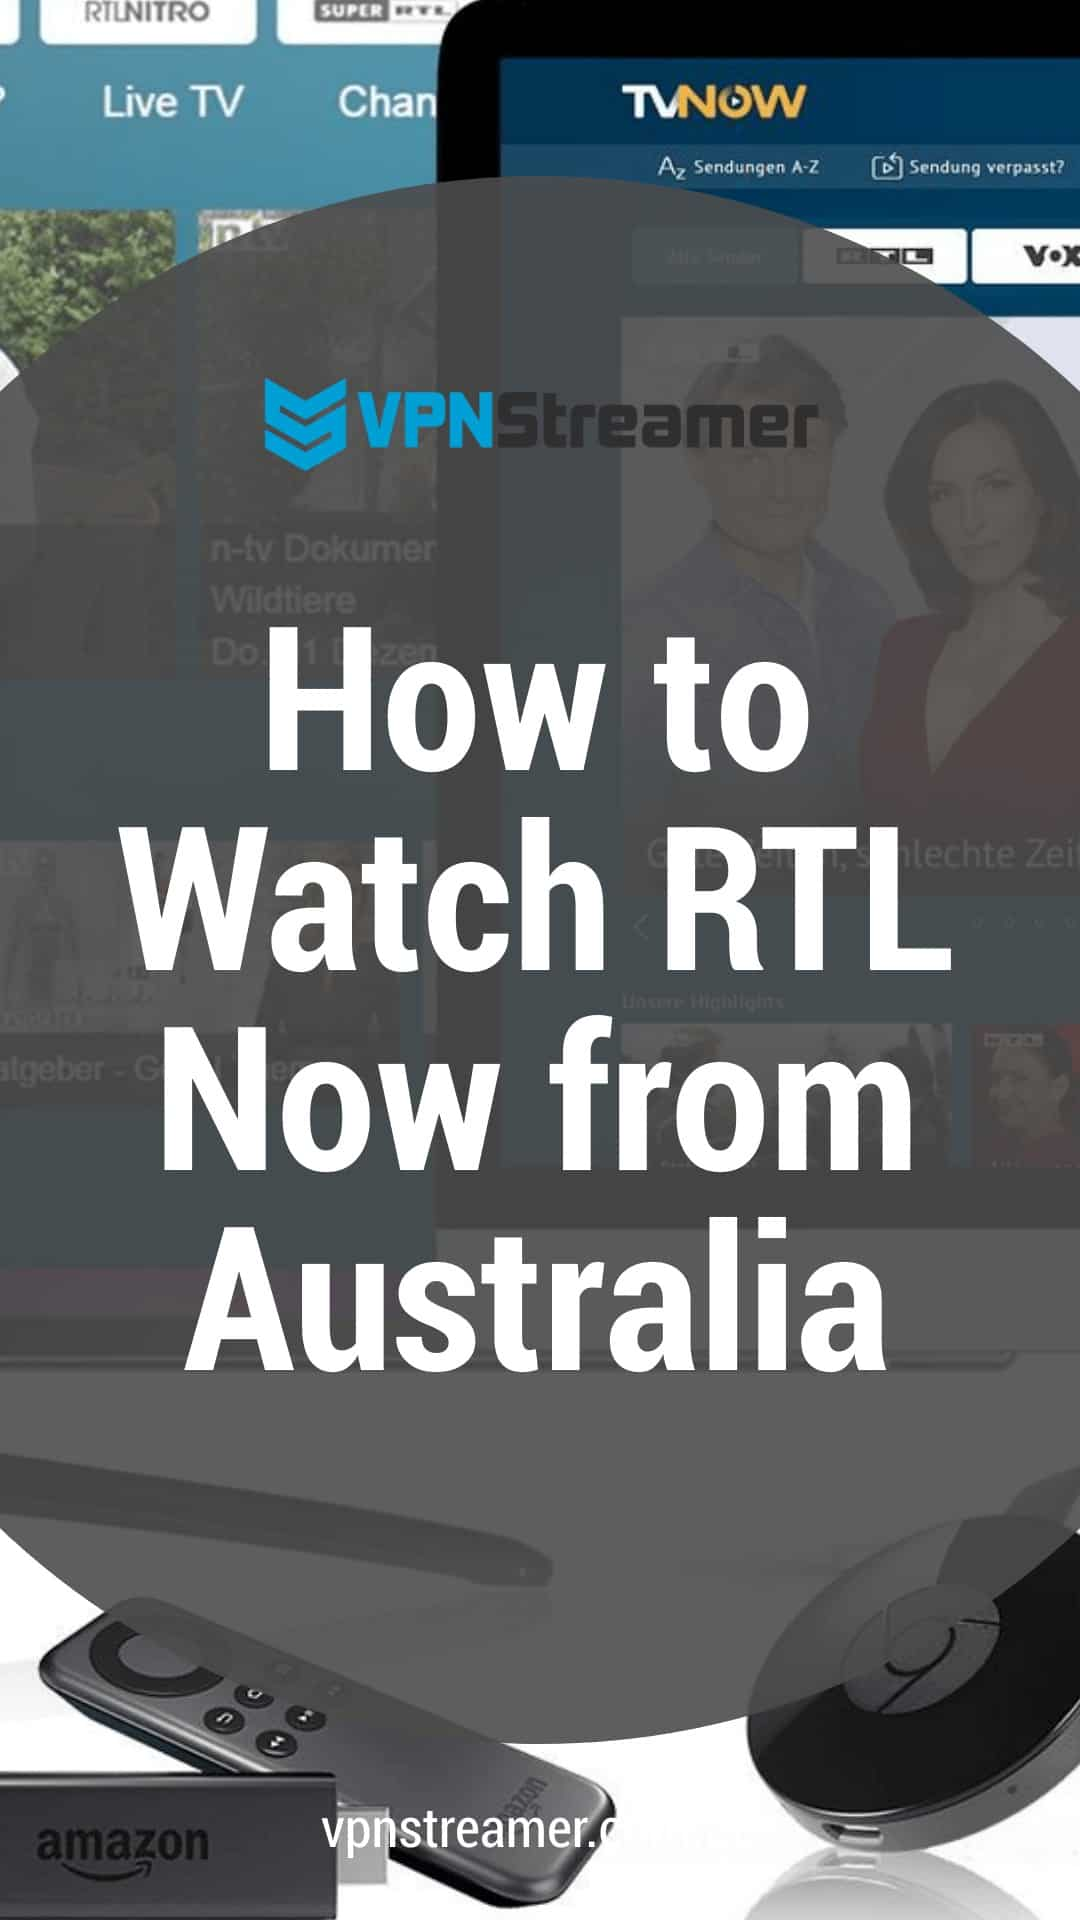 How to Watch RTL Now from Australia